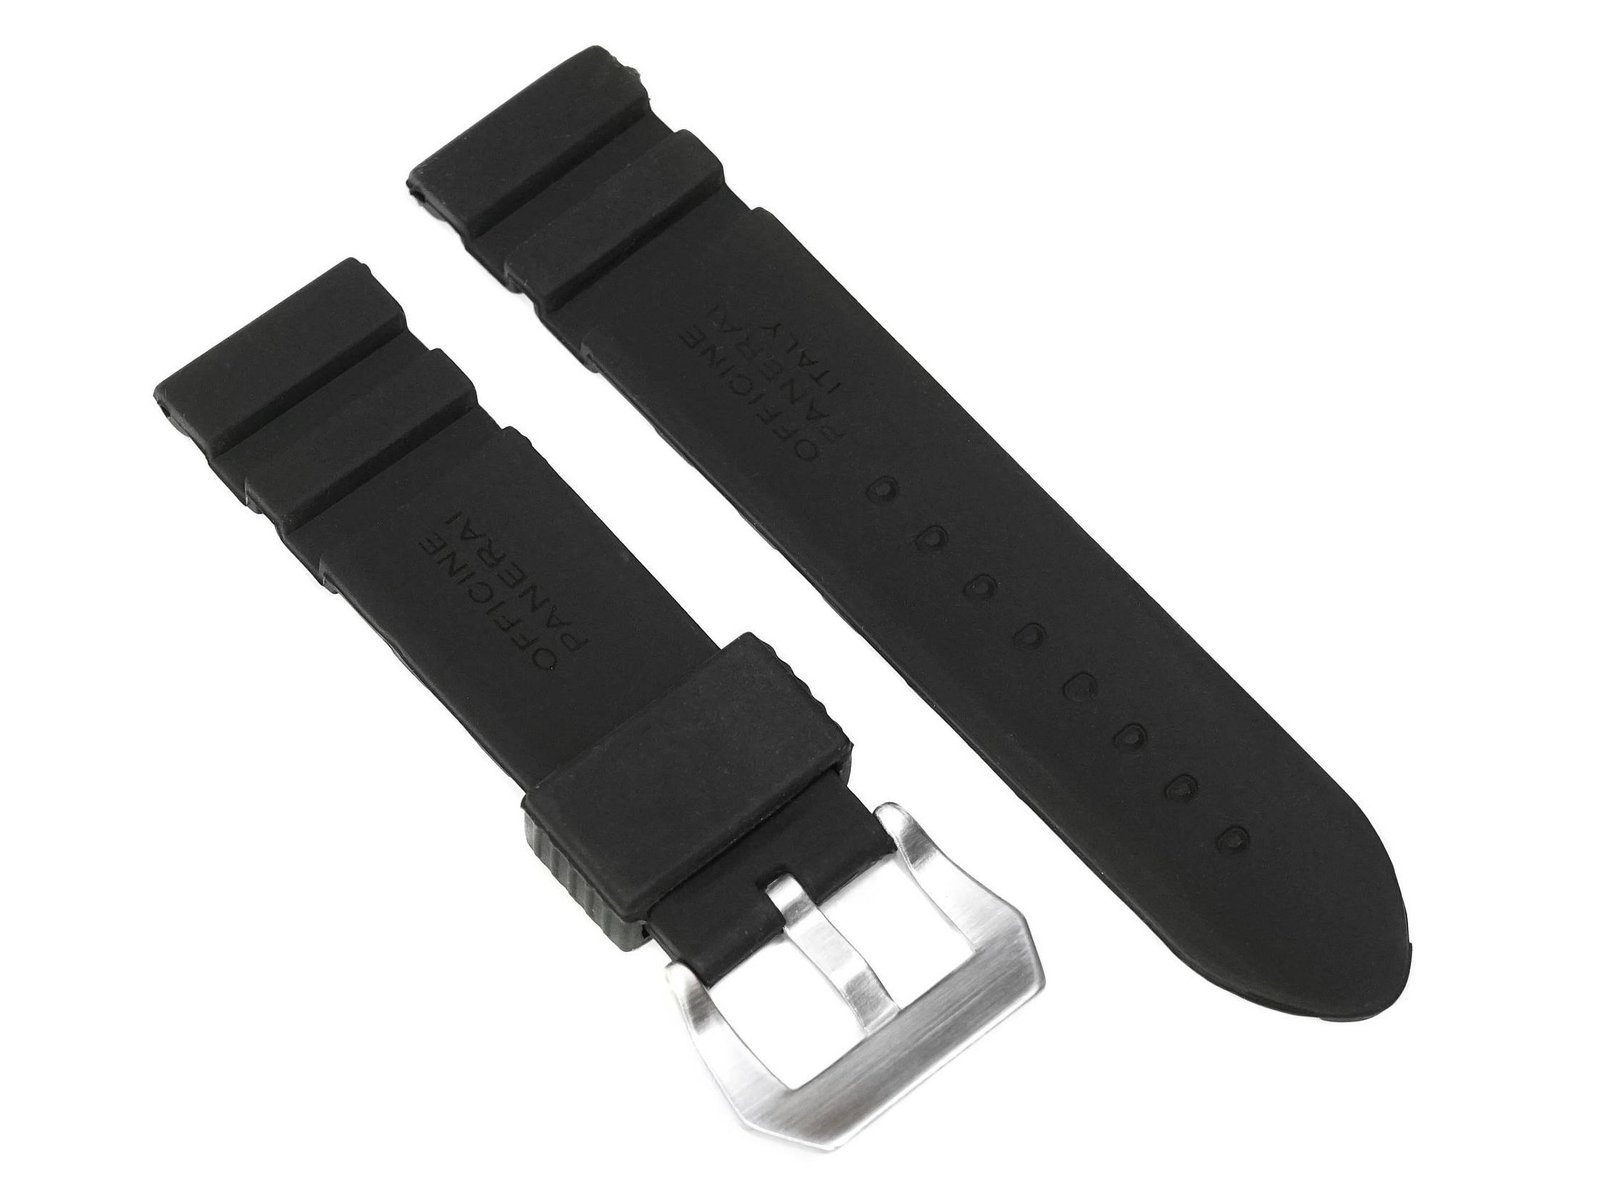 24mm Black Replacement Silicon Rubber Diver Watch Band Strap For Panerai